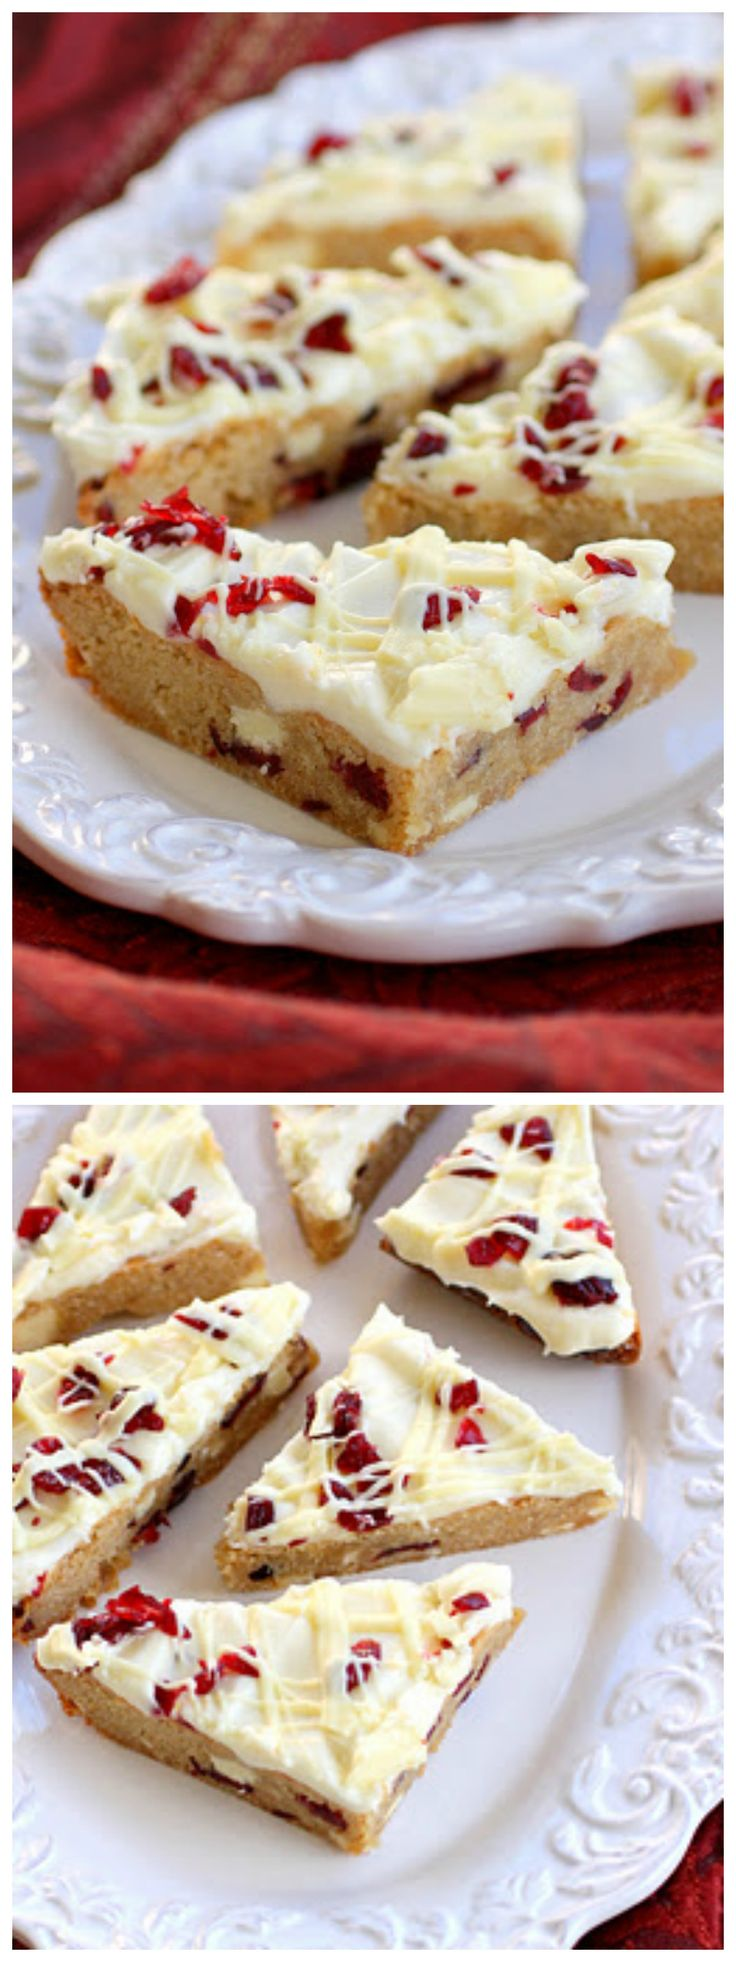 Cranberry Bliss Bars - a knockoff of the Starbuck's treat. A blondie dotted with white chocolate and cranberries with a slight hint of orange.